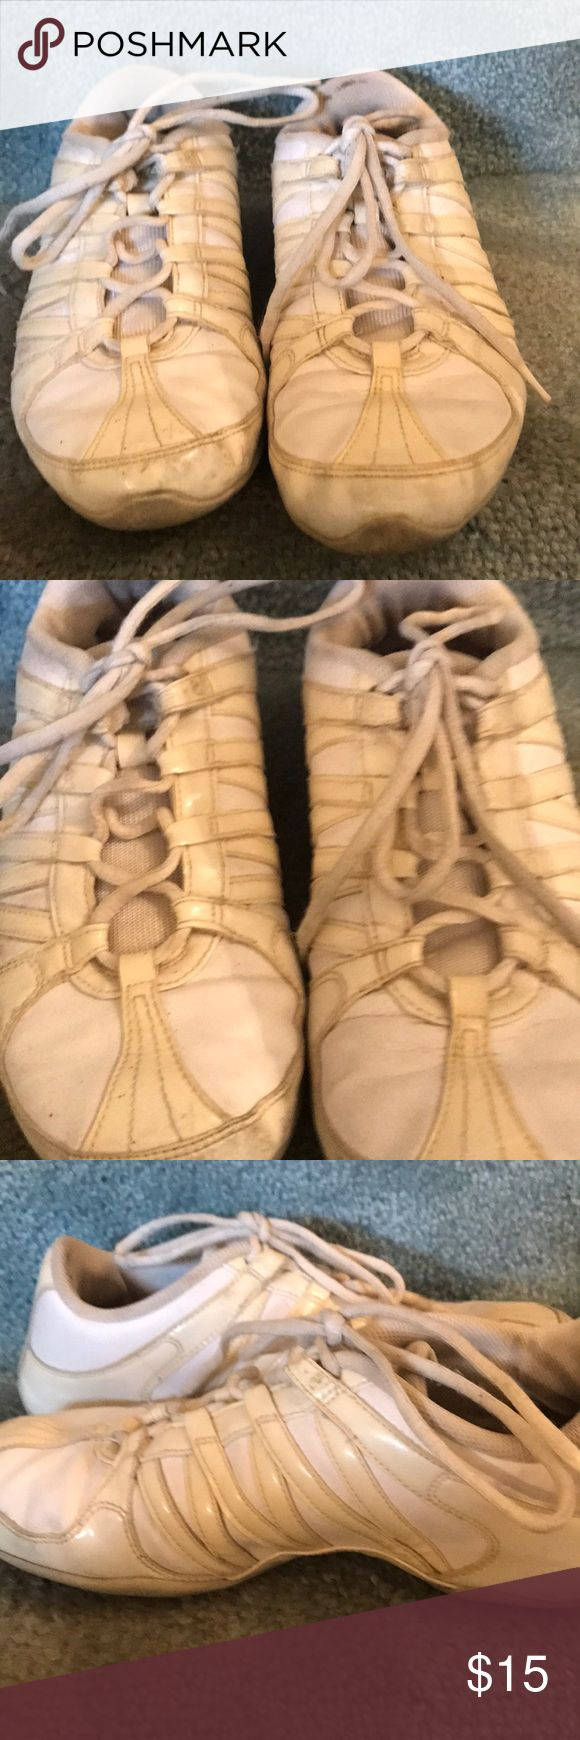 WOMENS PANTENT LEATHER NIKE GYMSHOES These gently loved it Nike paten leather and white leather gym shoes are lots of fun. They were used for cheerleading but can be worn for just about anything as they are all purpose gym shoes Nike Shoes Sneakers